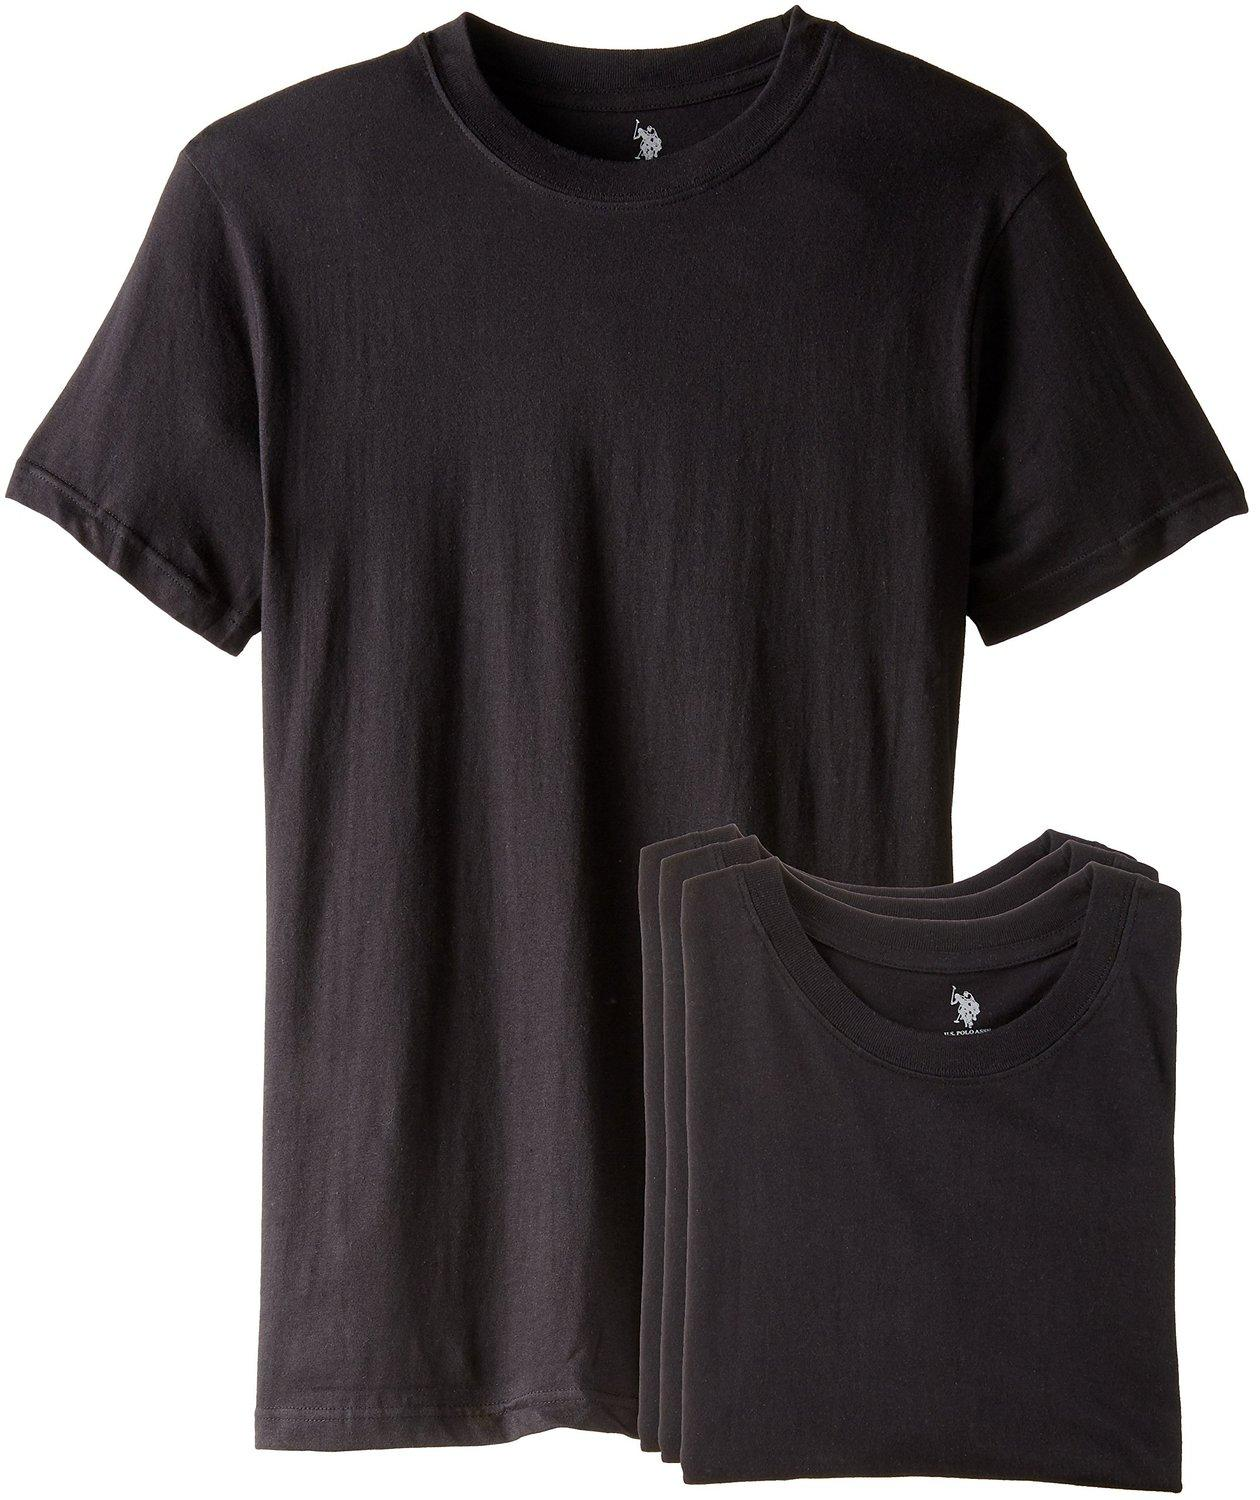 U.S. POLO ASSN. Men's 3 Pack Crew Tee